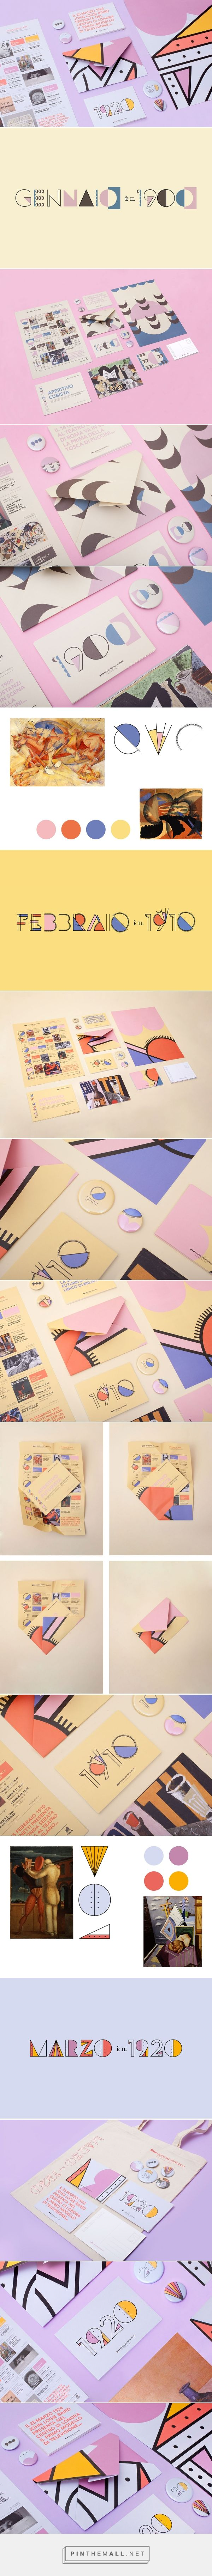 Museo del 900 – Yearly programme on Behance - created via http://pinthemall.net